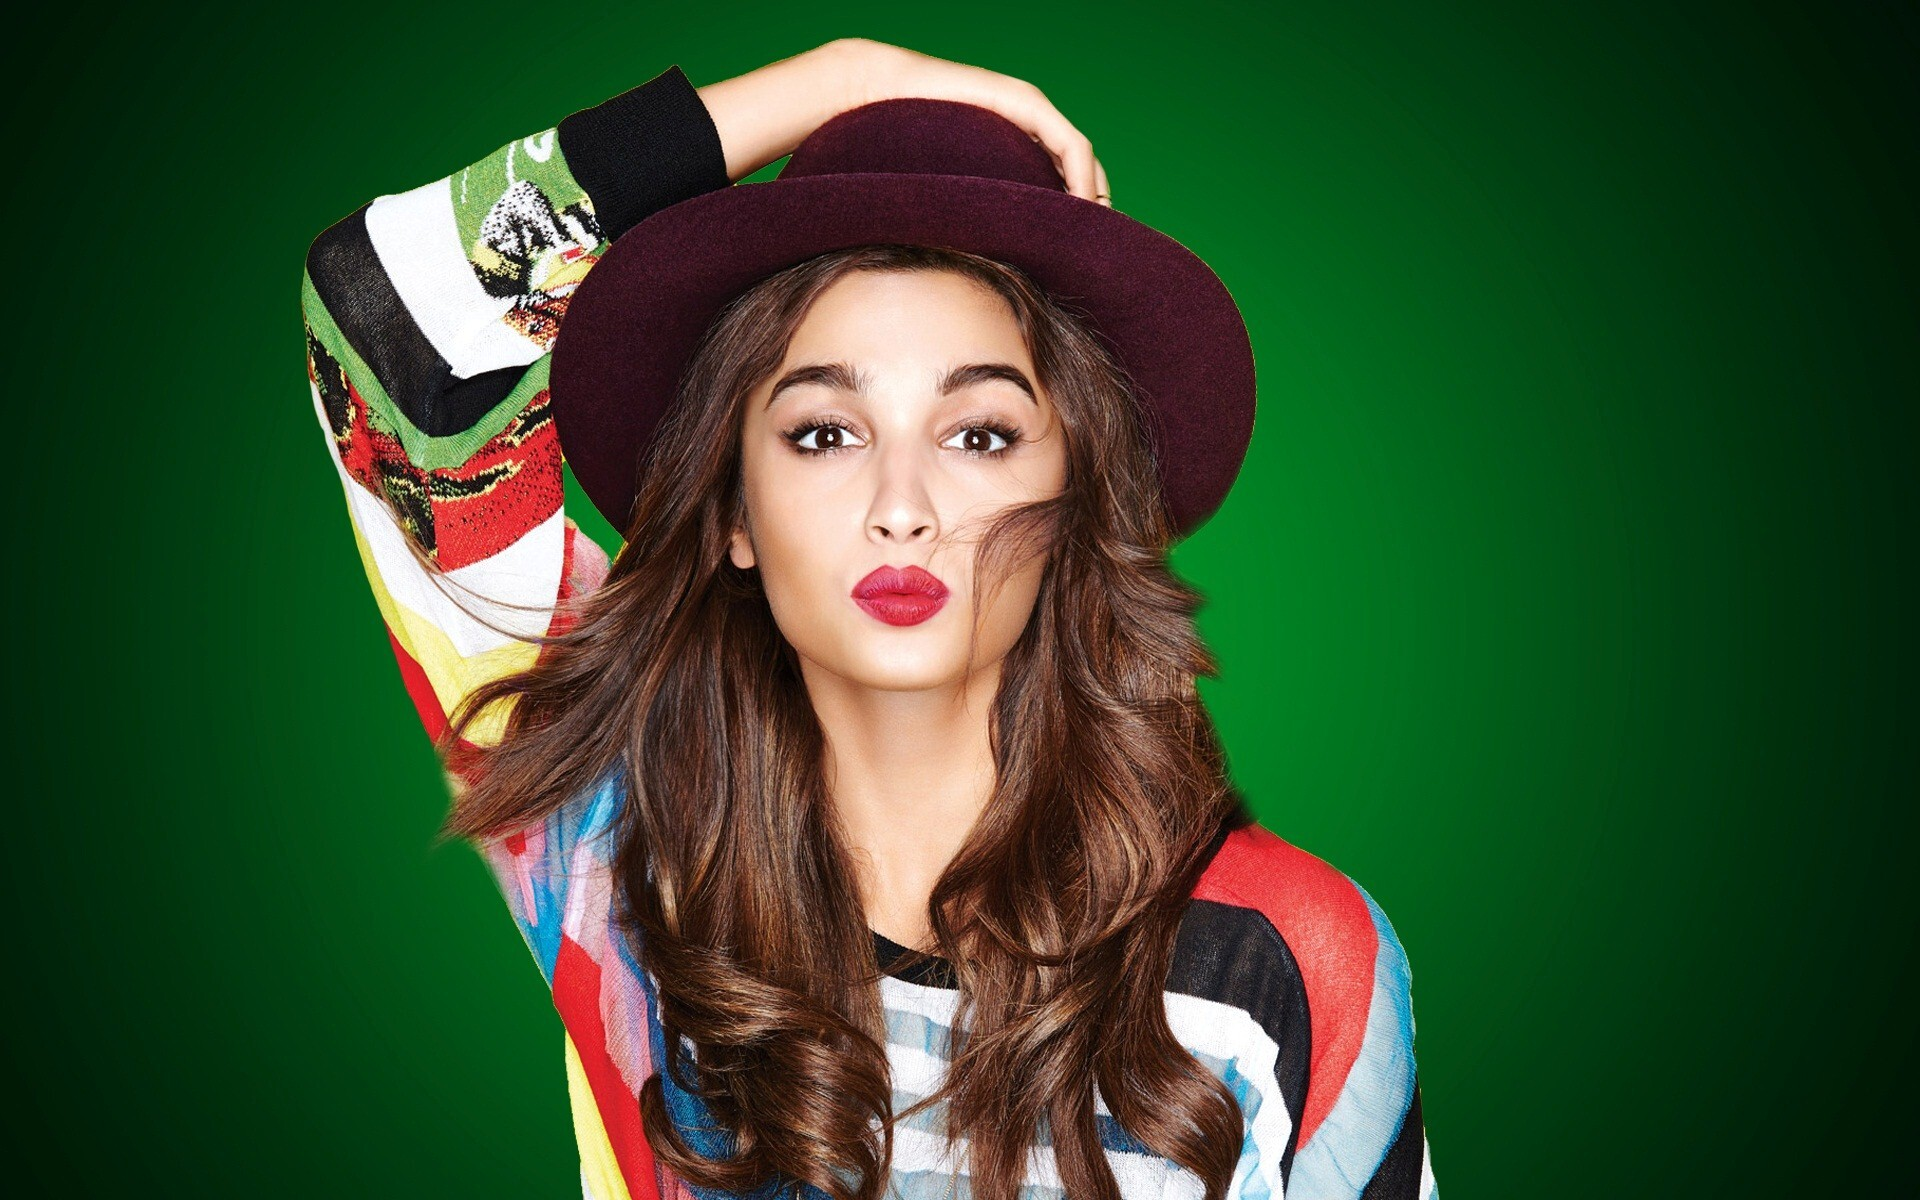 actress alia bhatt wearing cap hd wallpapers | hd wallpapers